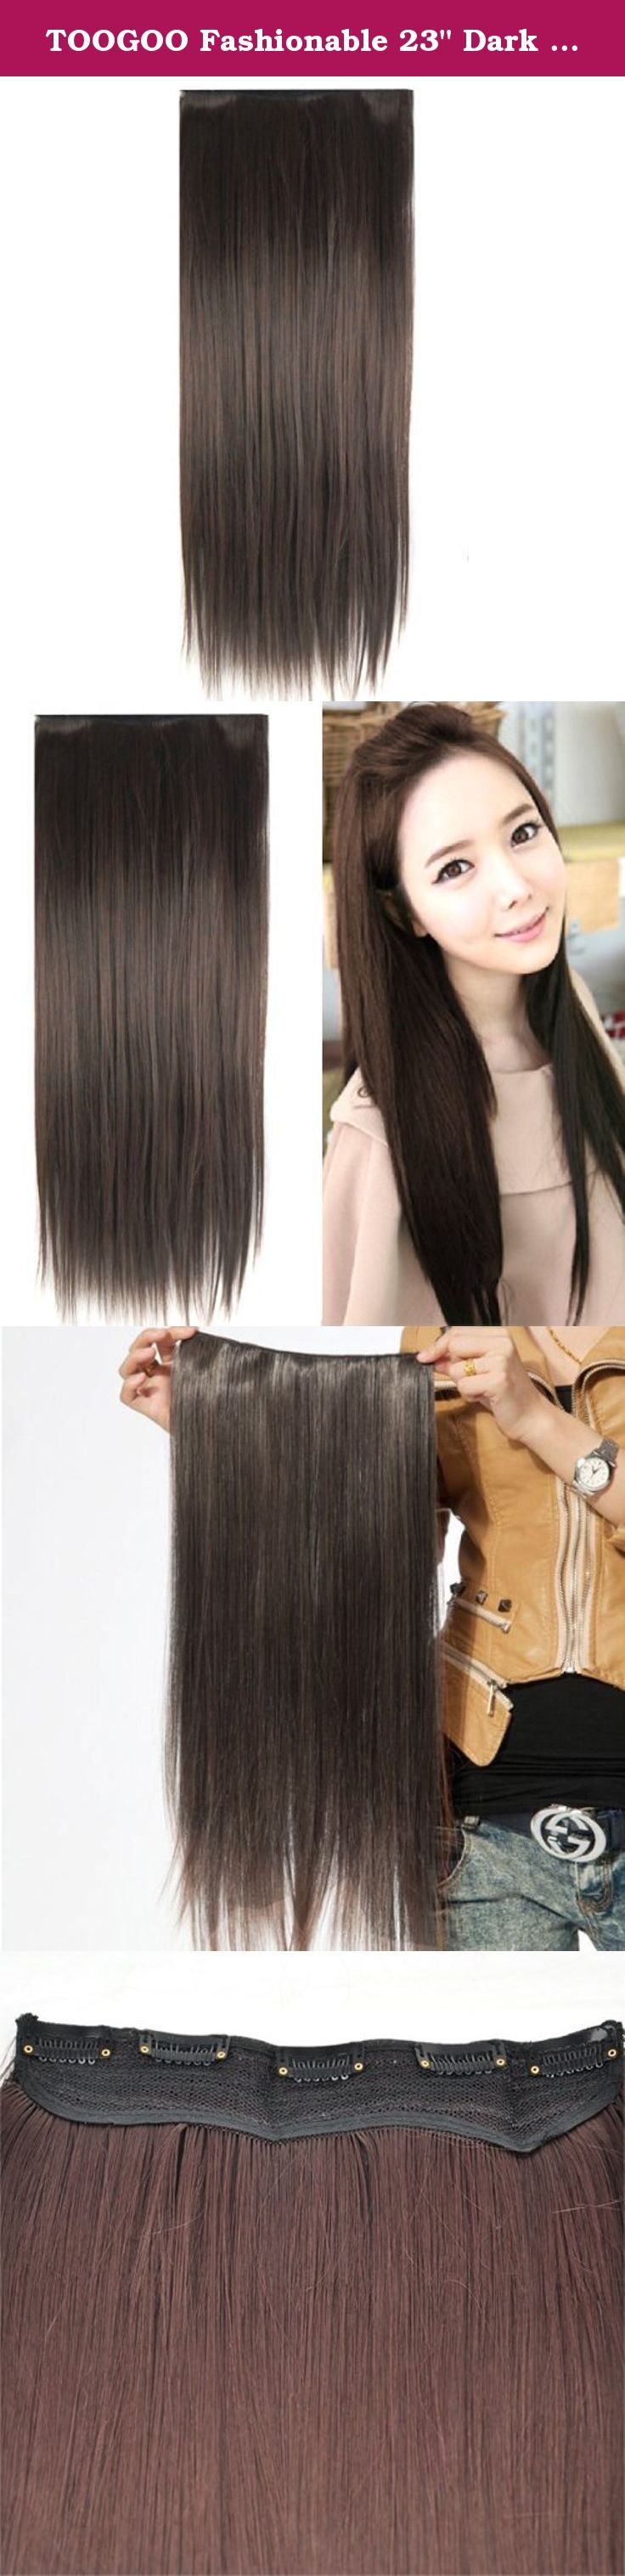 Toogoo Fashionable 23 Dark Brown Straight Full Head Clip In Hair